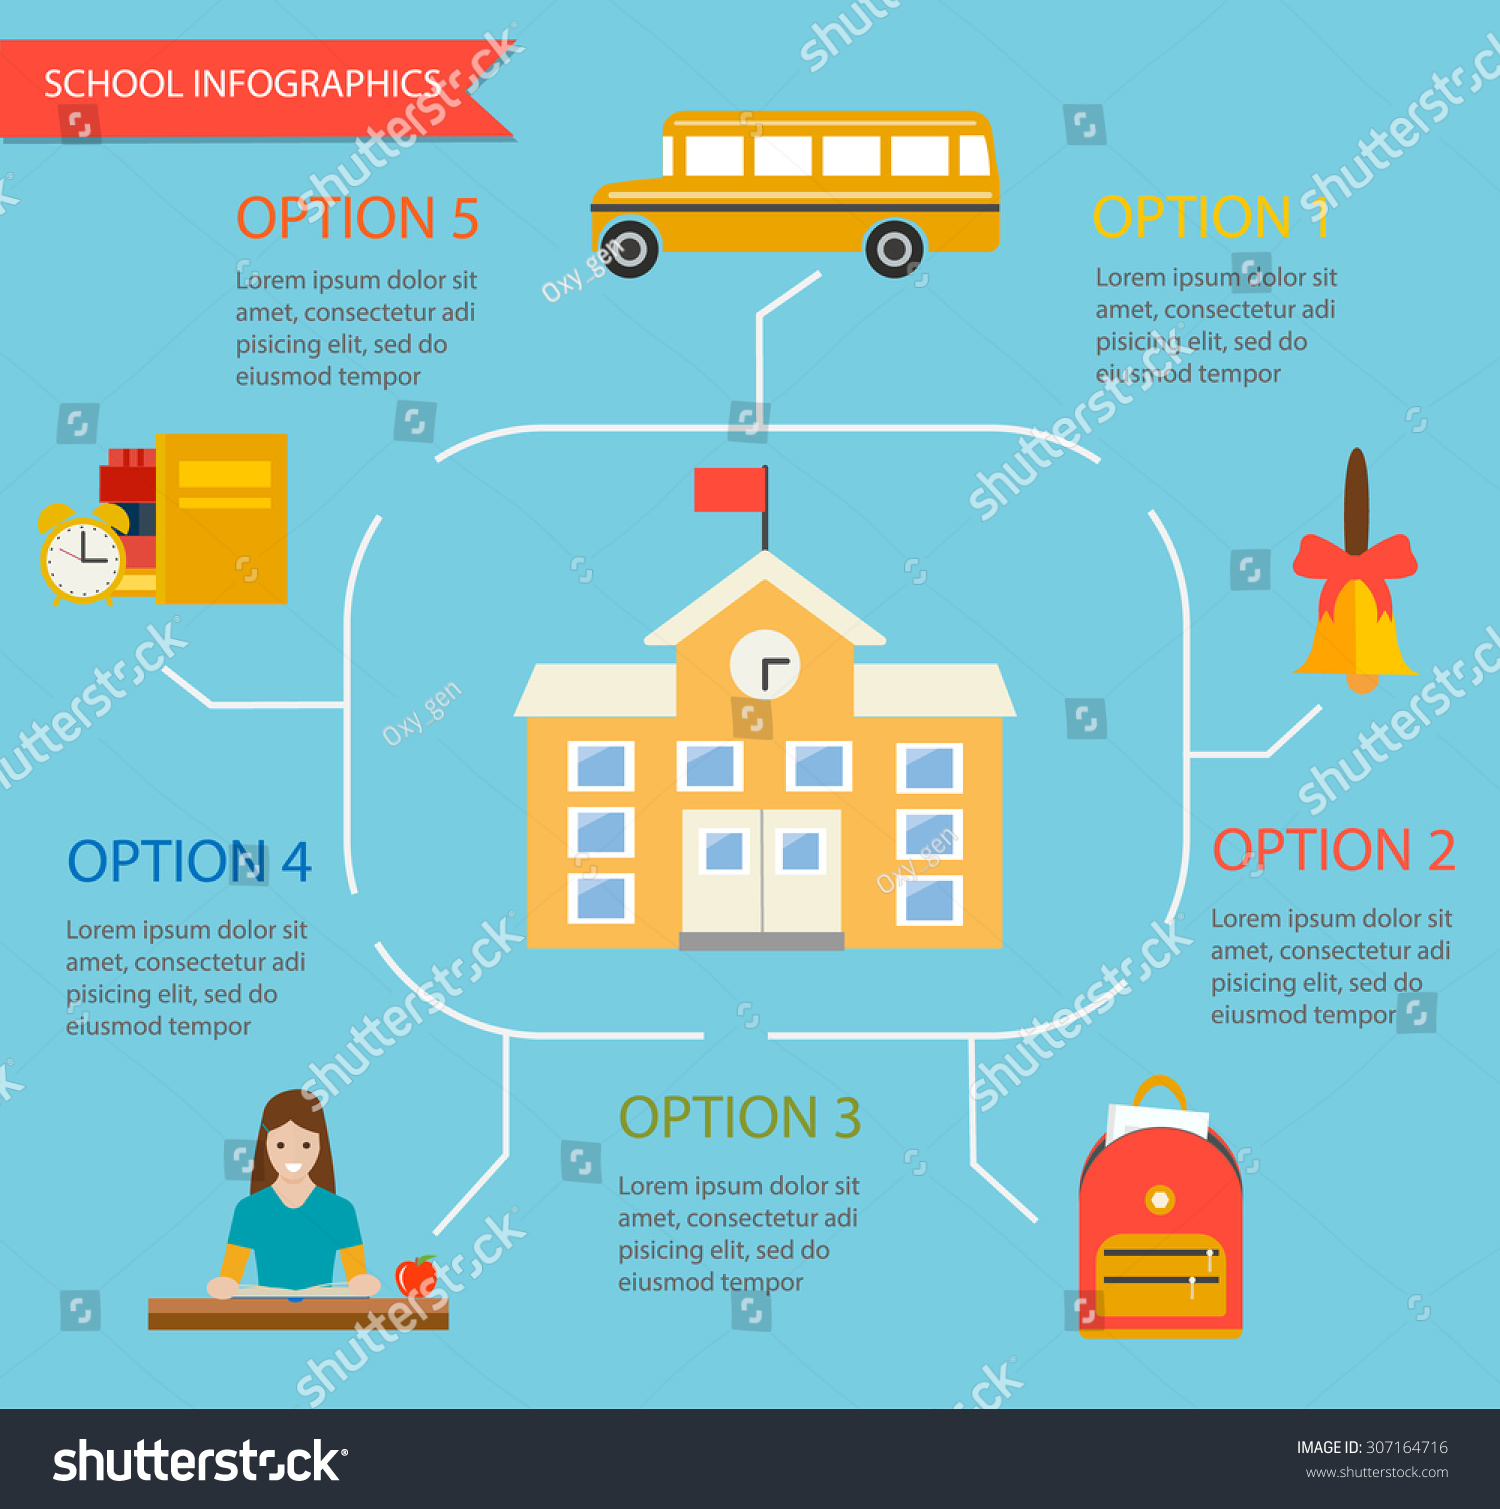 School Infographics Template With School Building And